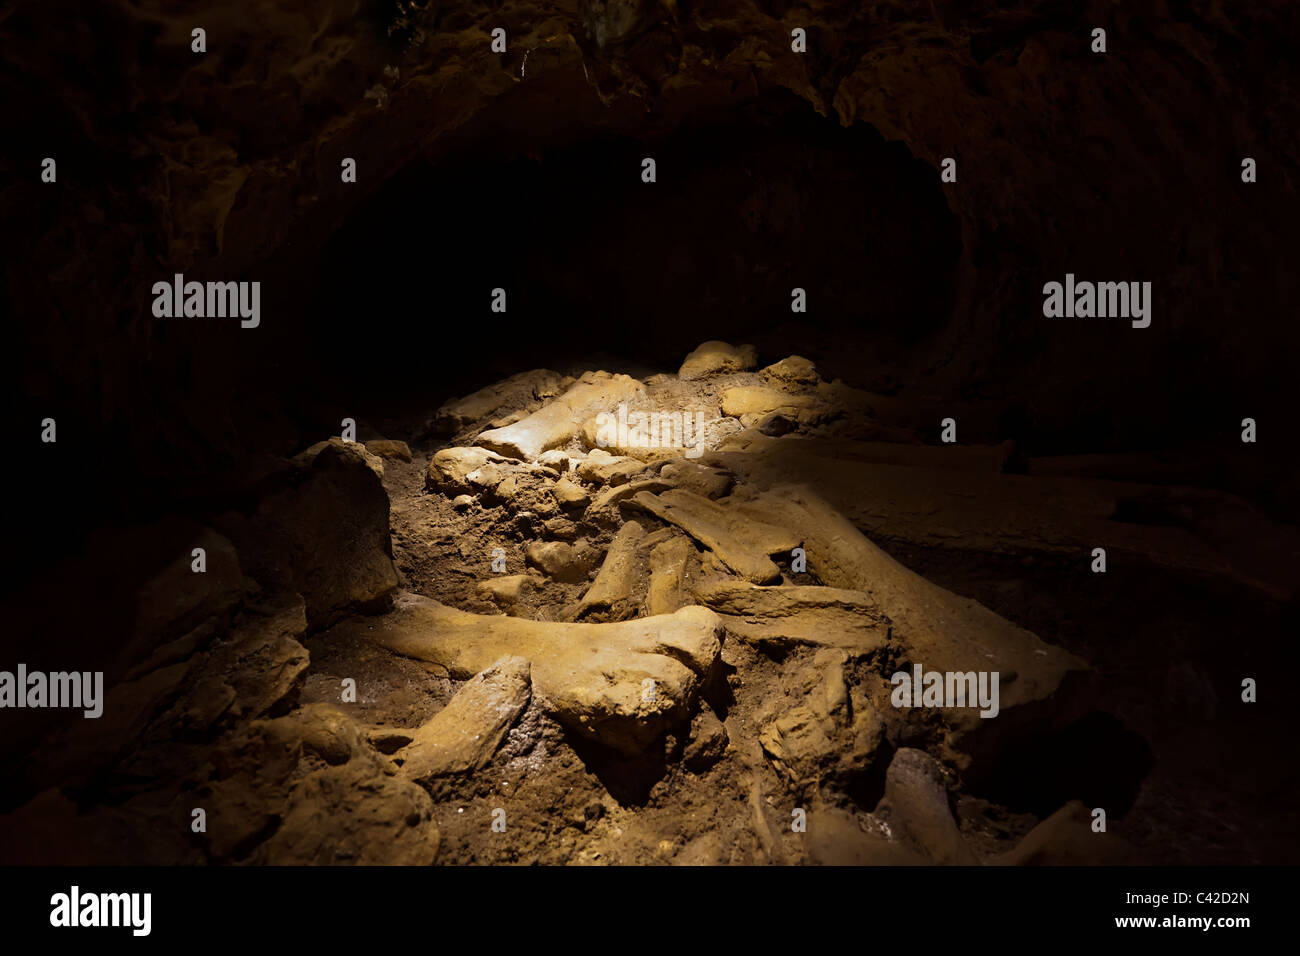 Replica of archaeological bones found in situ in a cave displayed in museum at Les Eyzies Dordogne France Europe - Stock Image